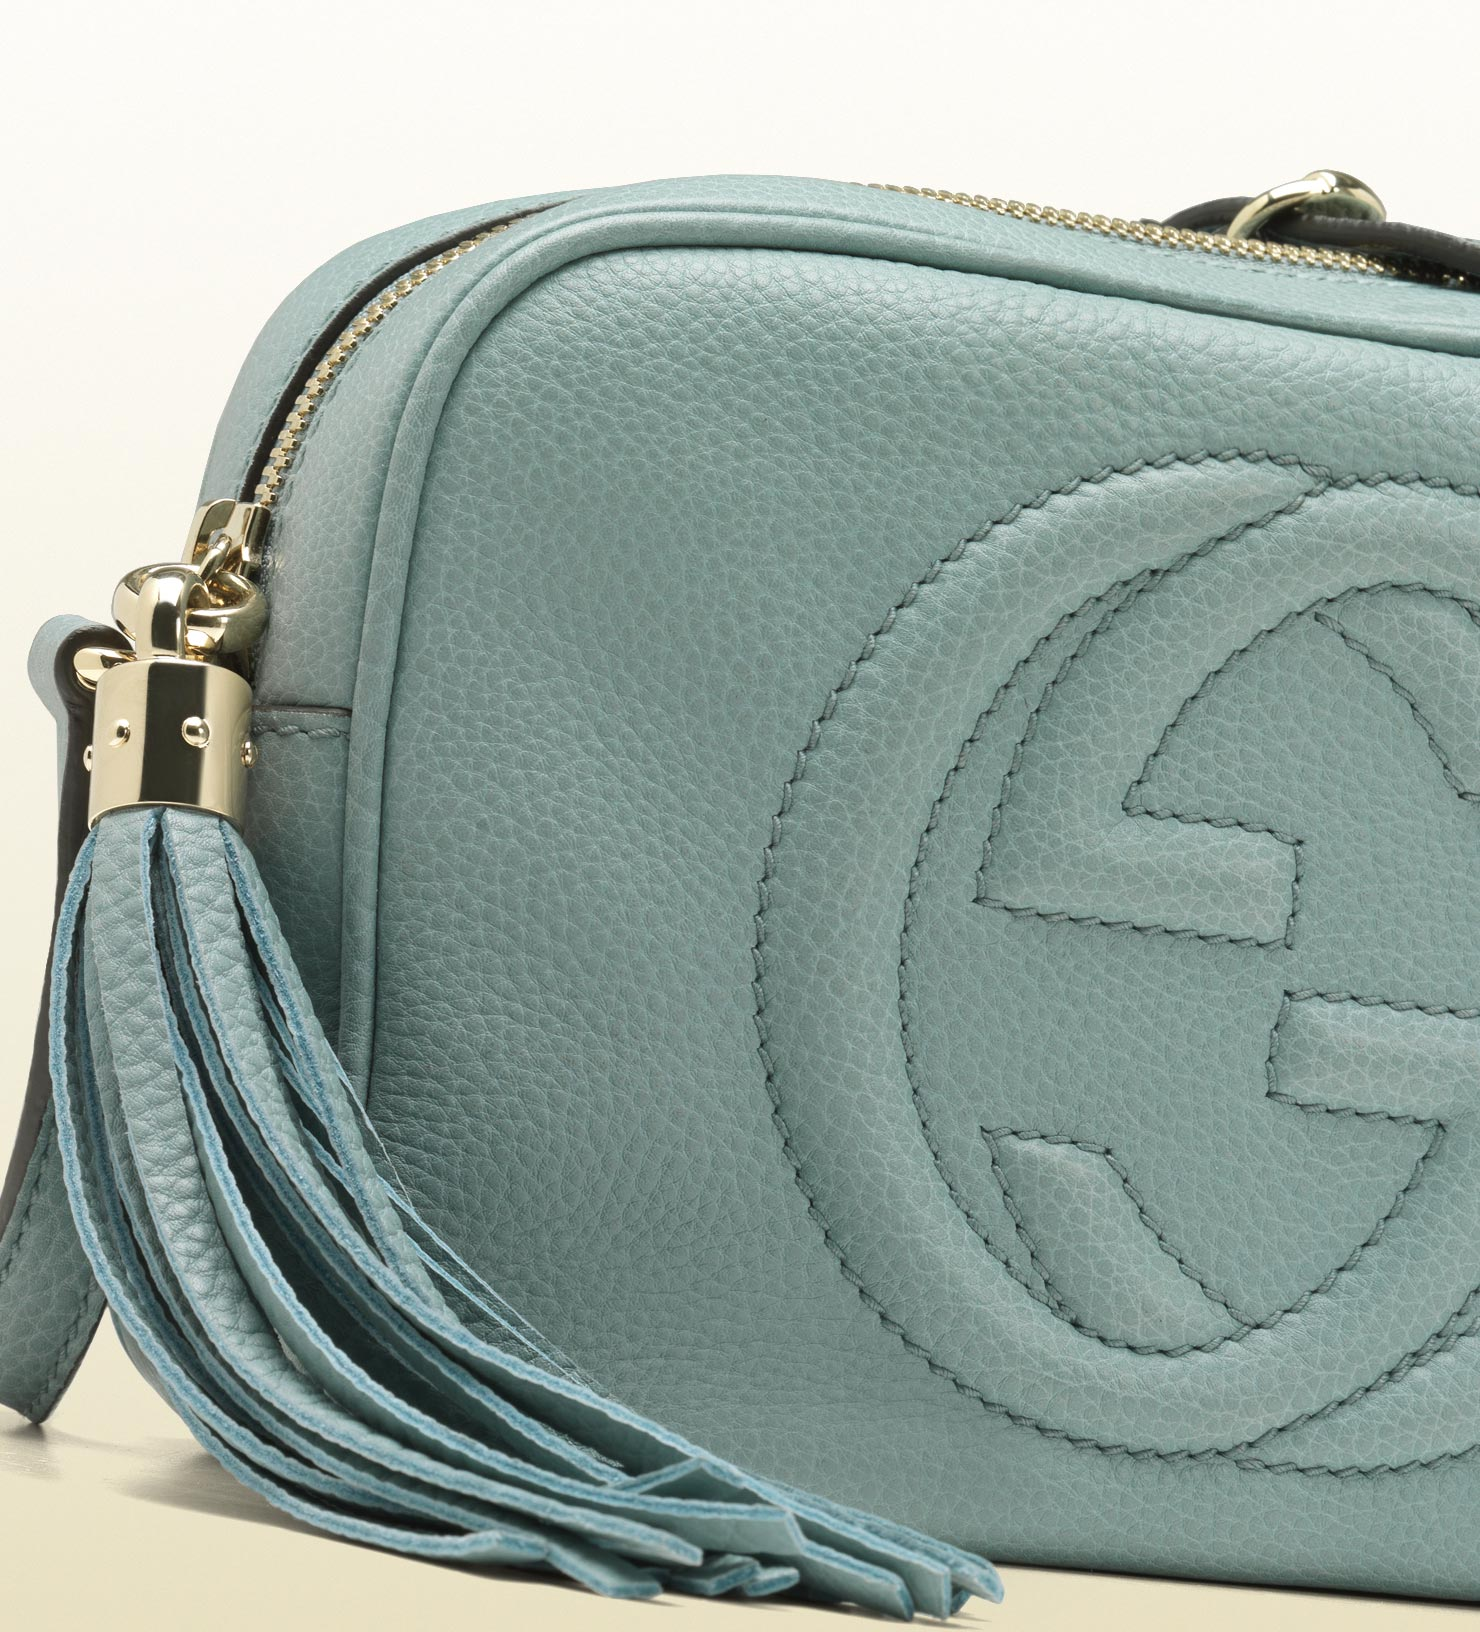 f7f130e3be0b17 Gucci Soho Light Blue Leather Disco Bag - Collections Blue Images